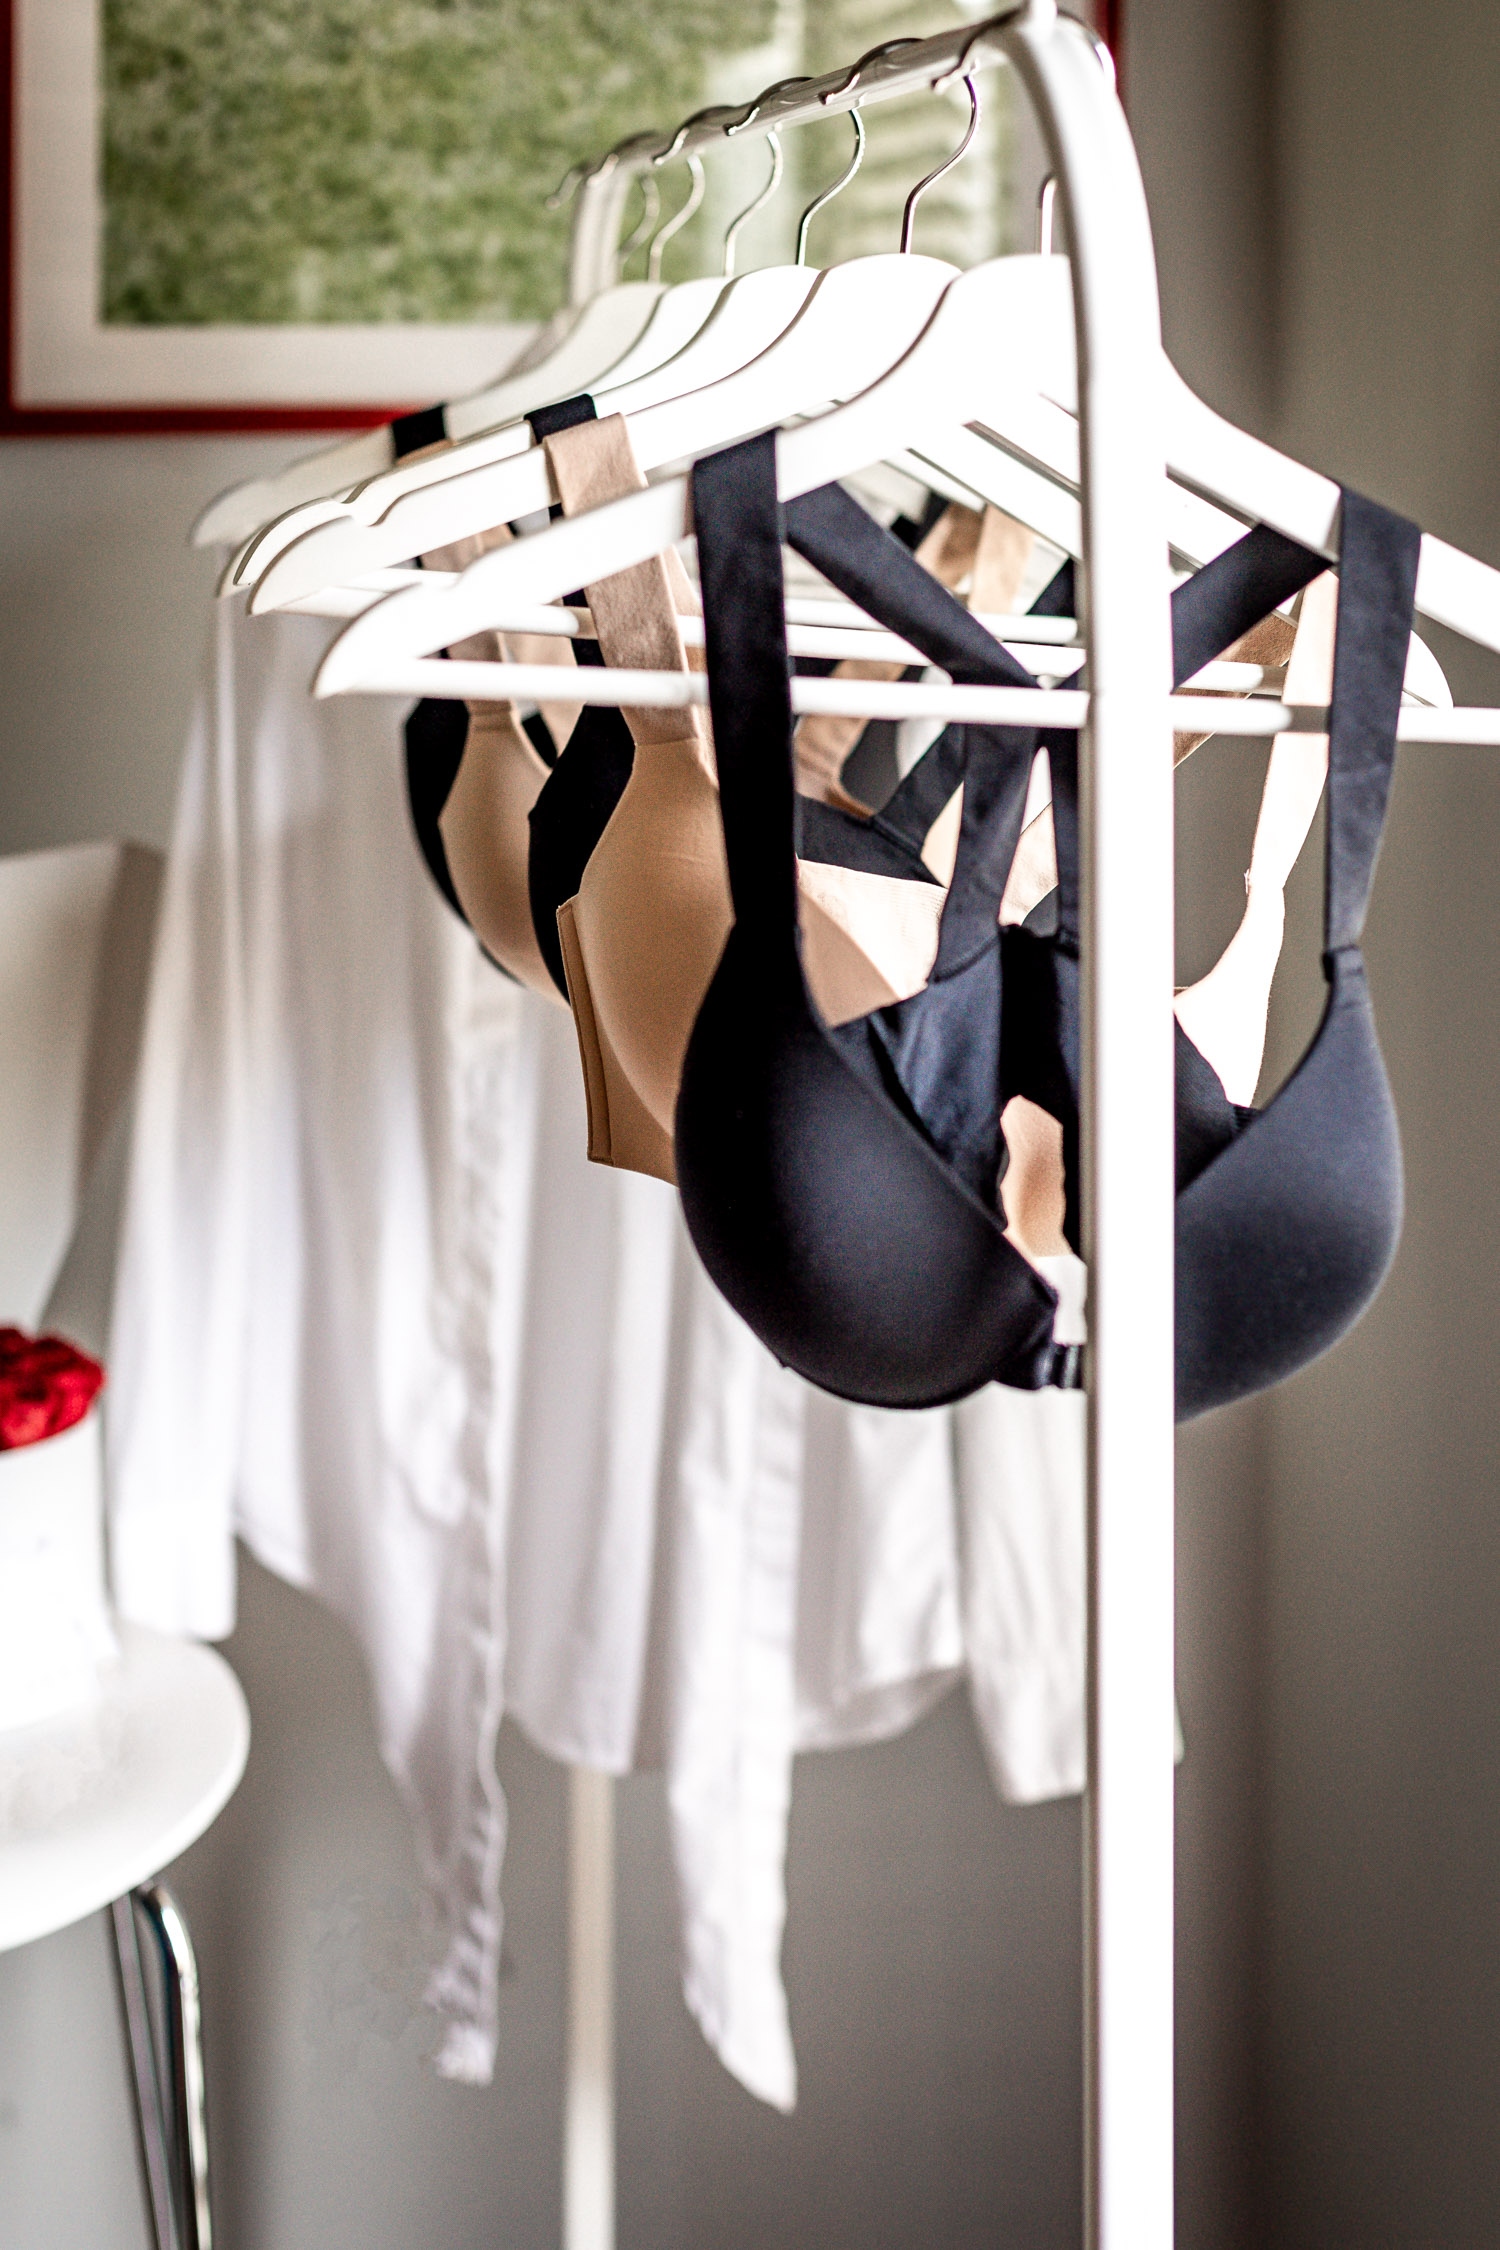 Atlanta blogger Monica Awe-Etuk tries the new spanx bra-llelujah collection. bra.